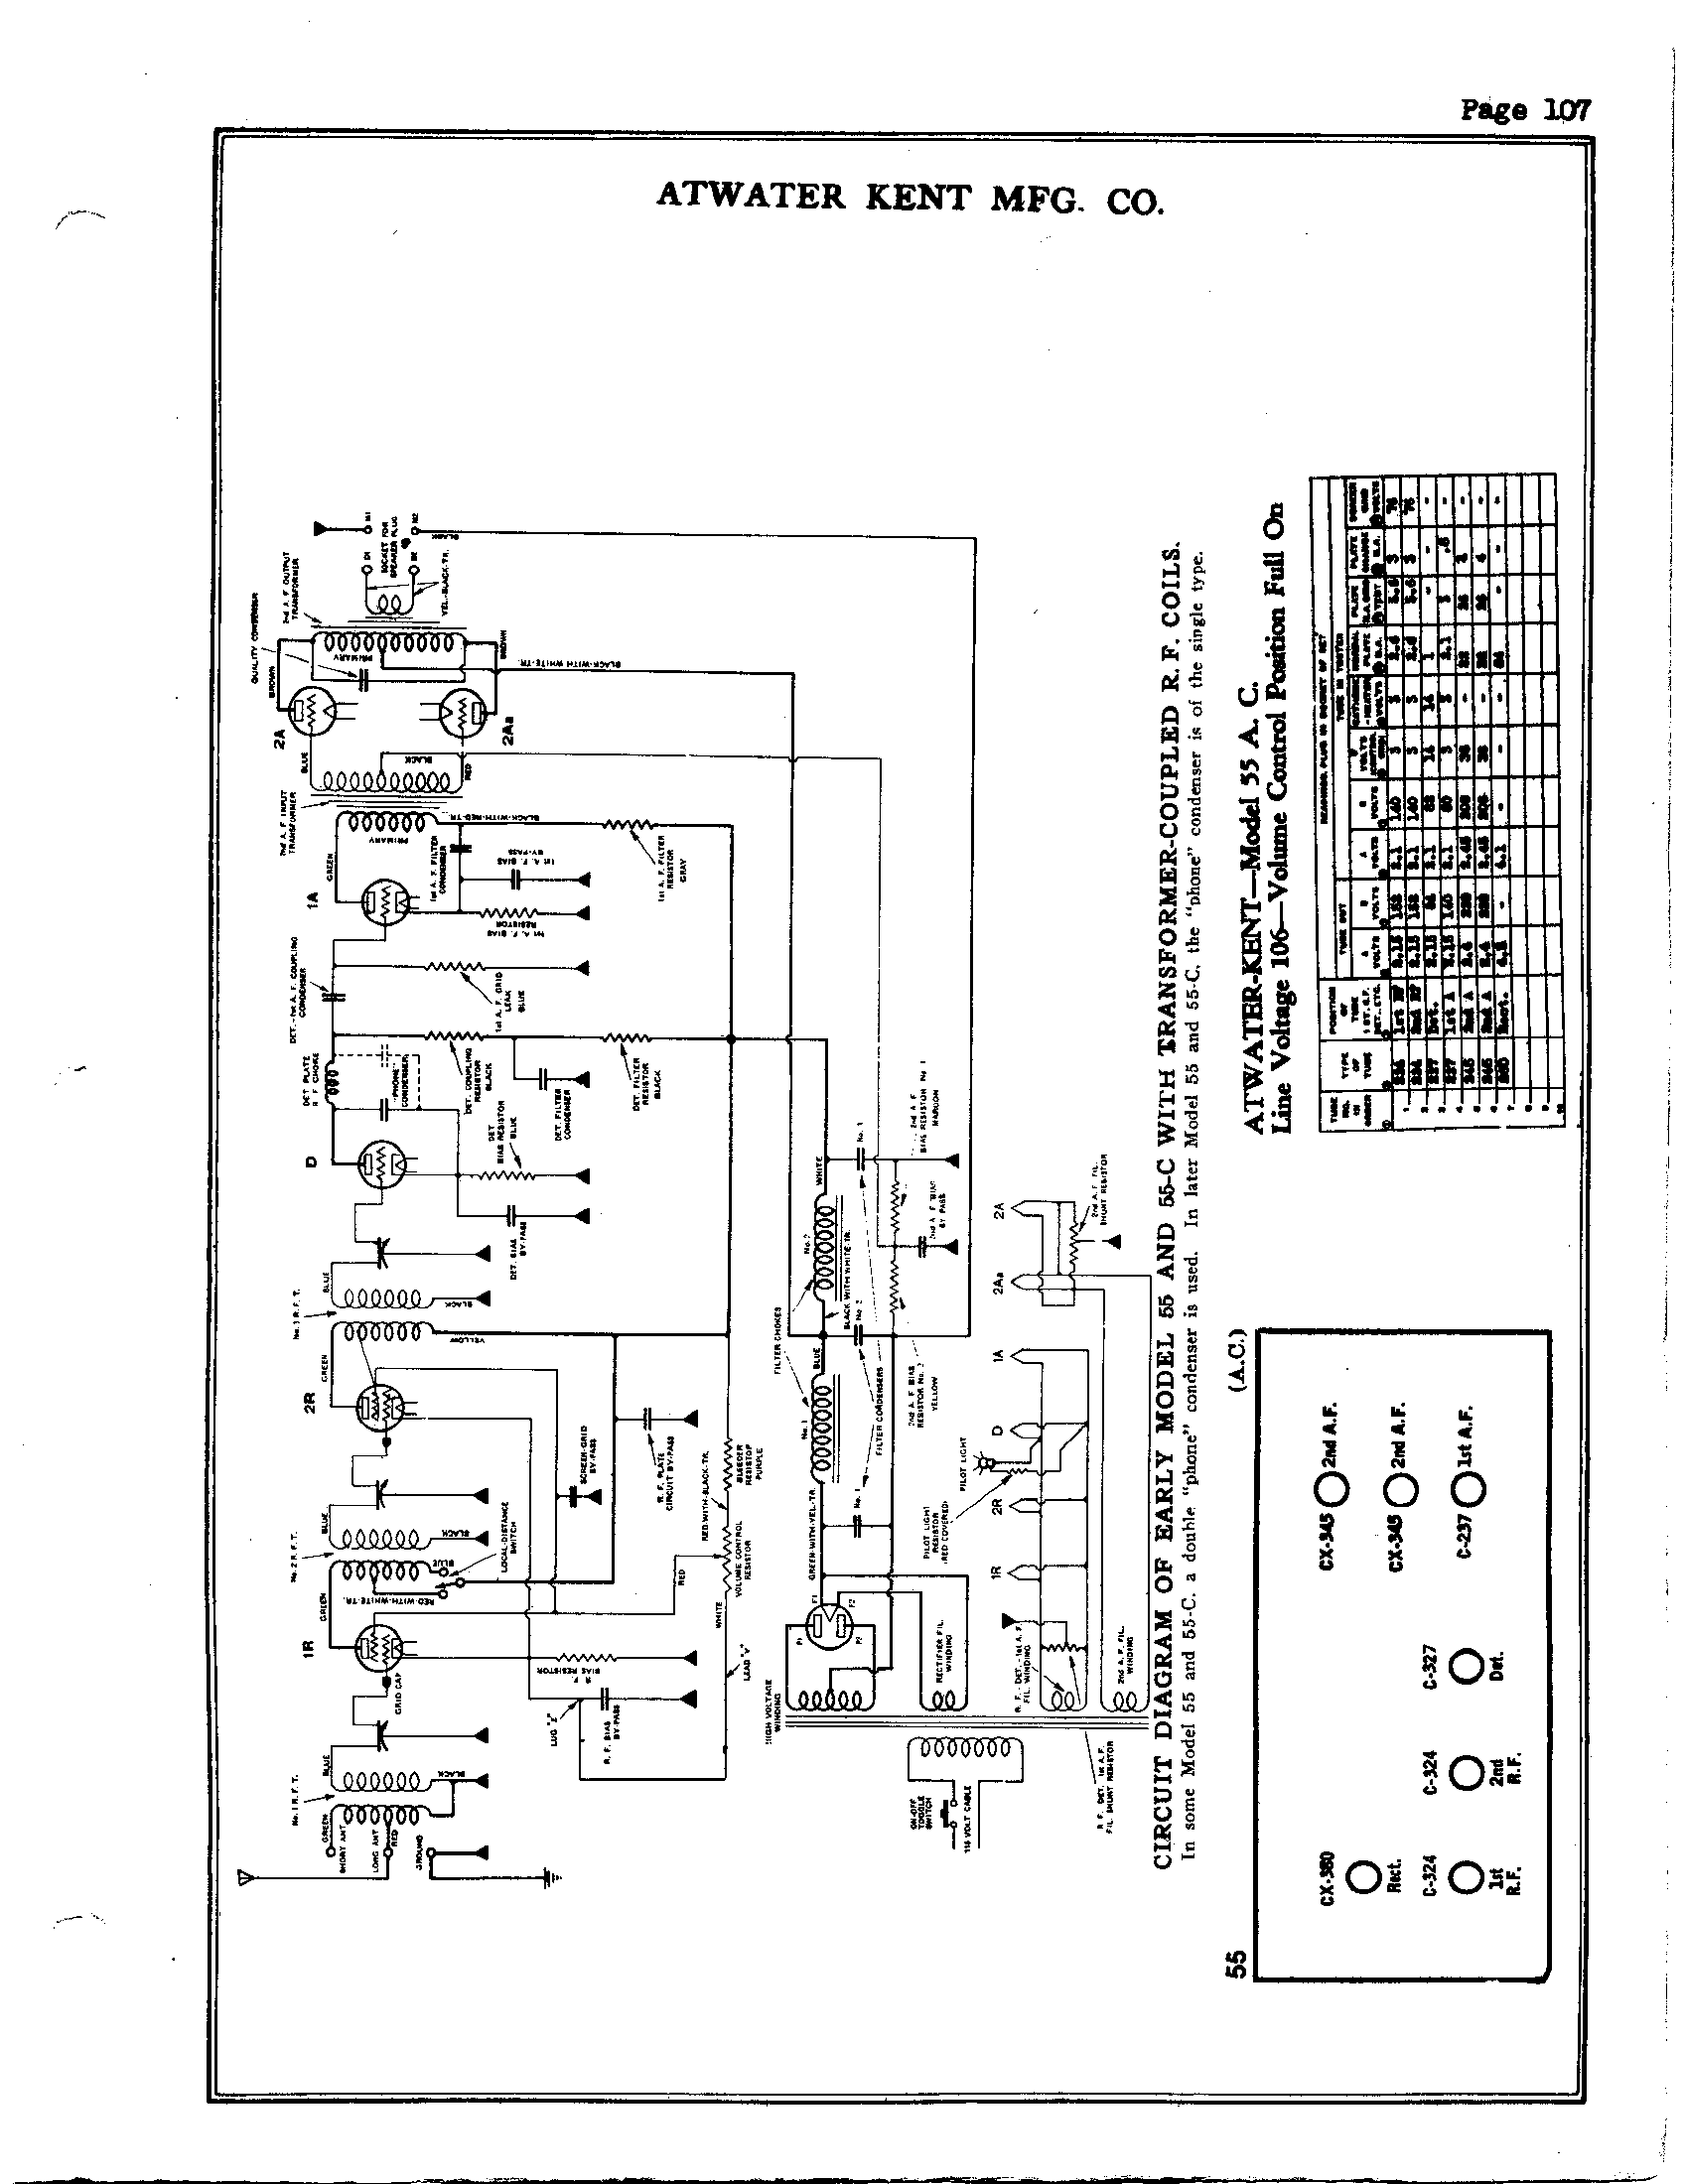 Atwater Kent C Pg on 2001 Chevy Cavalier Radio Wiring Diagram